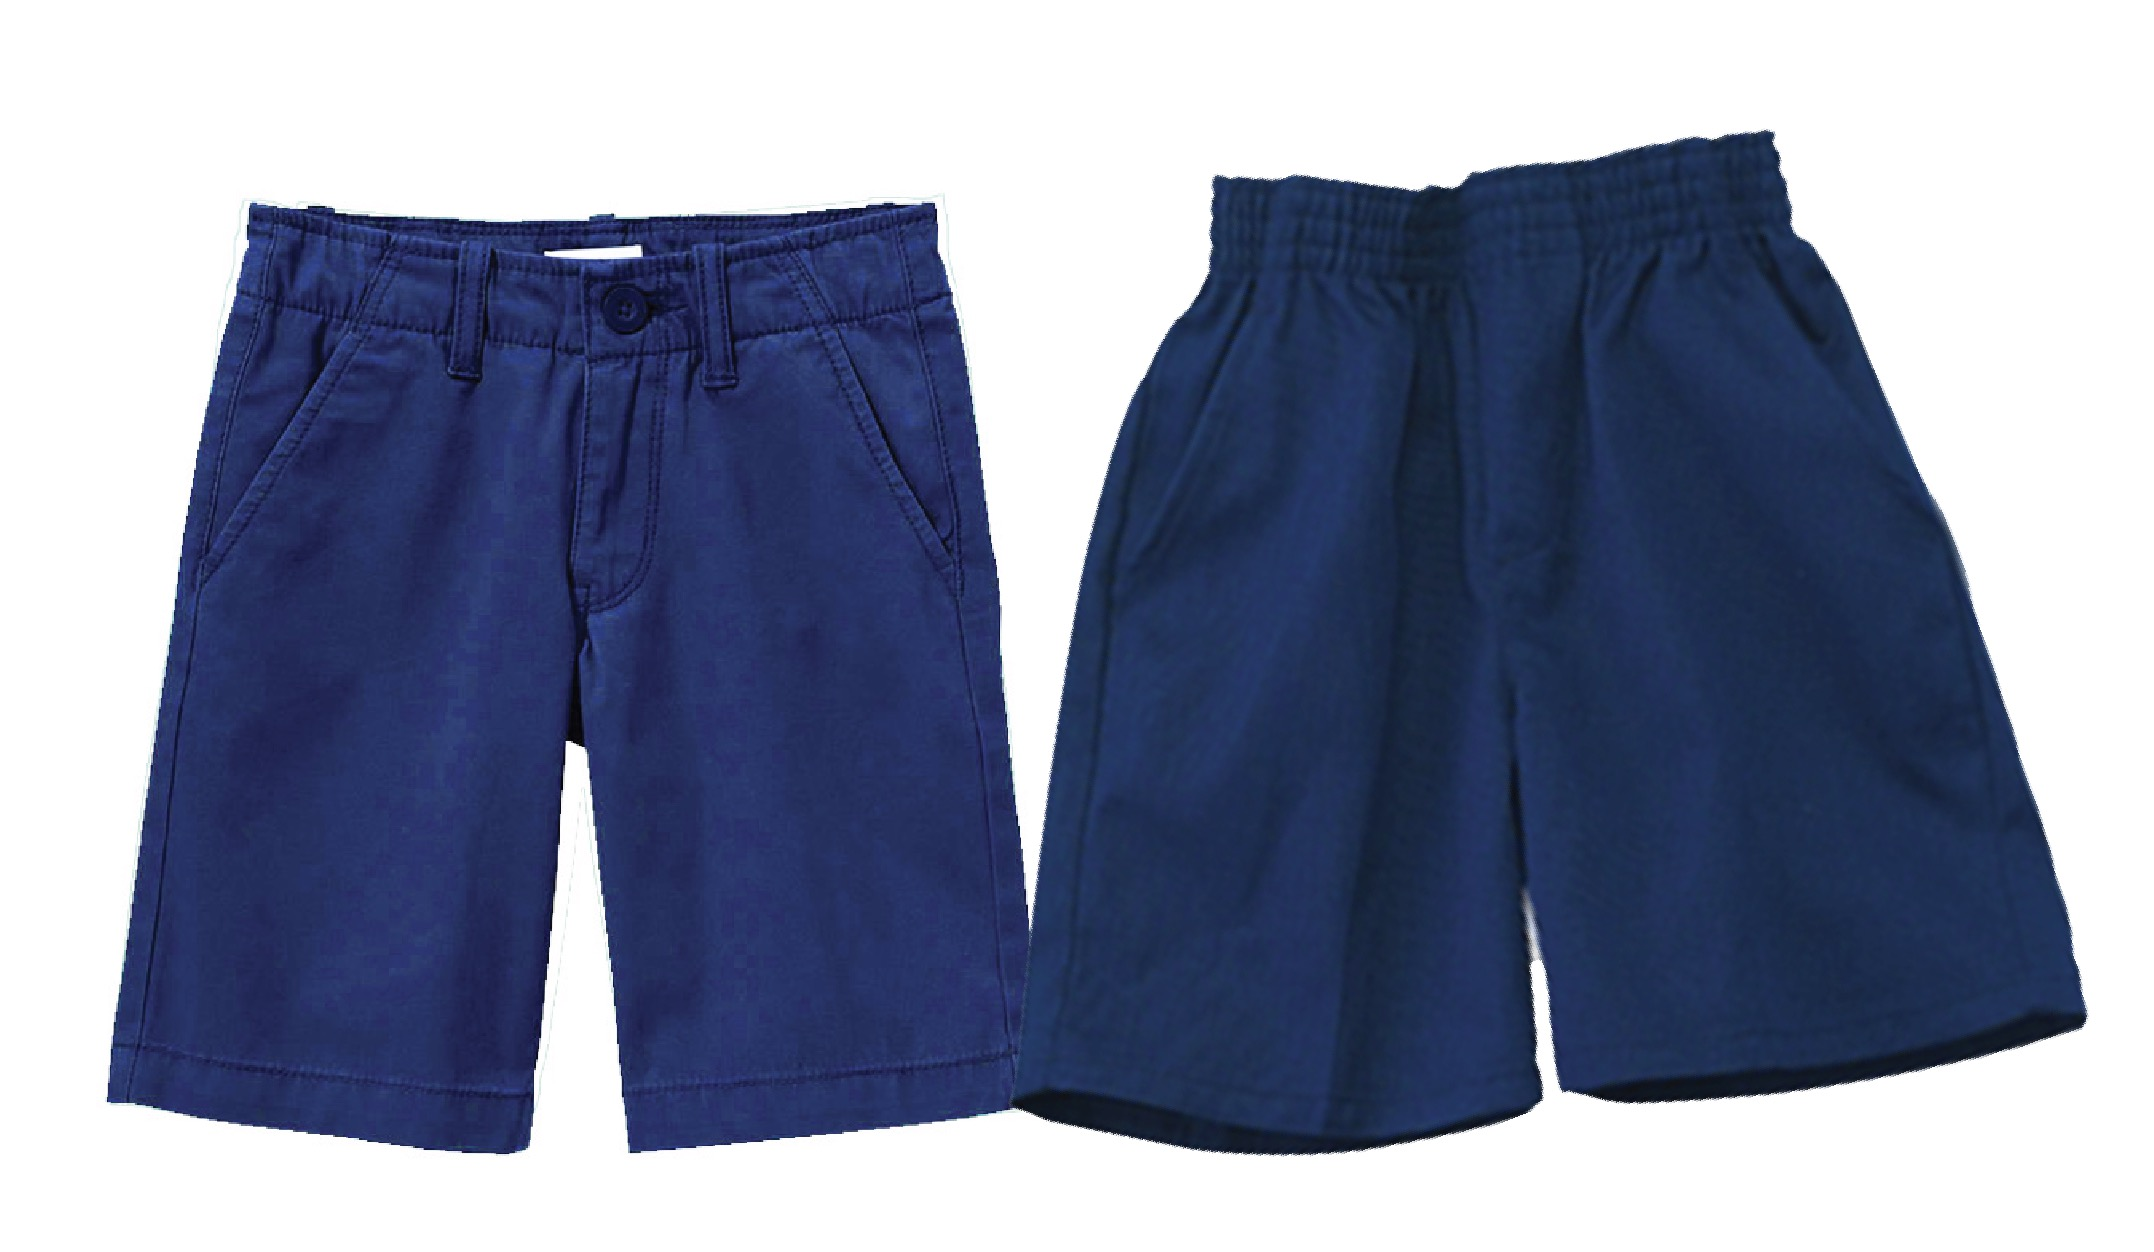 GIRLS - IBILEY PREMIUM LINE - Short Boy Flat Front Pull UP